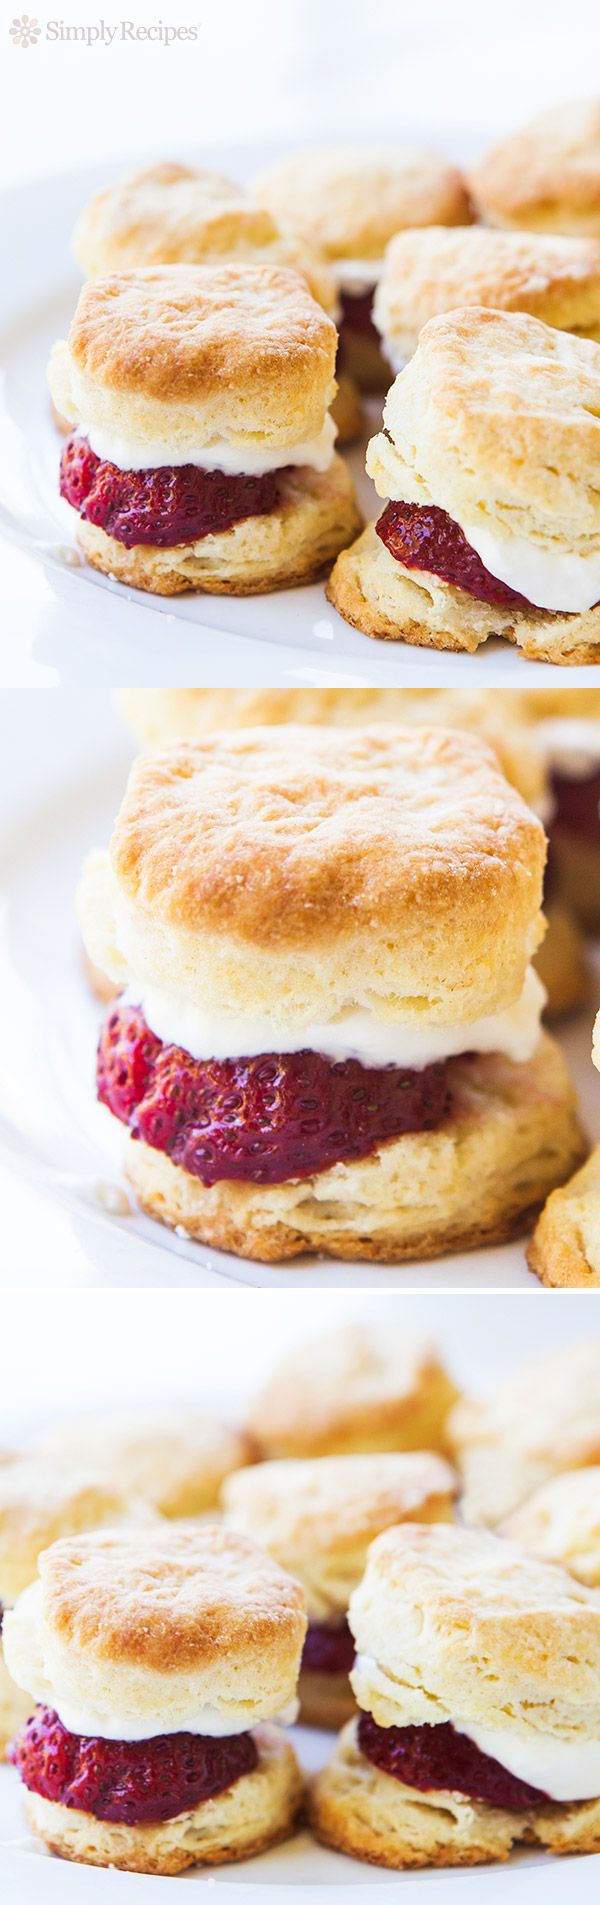 Strawberry Shortcake Sliders | Recipe | Strawberry Shortcake, Mini ...